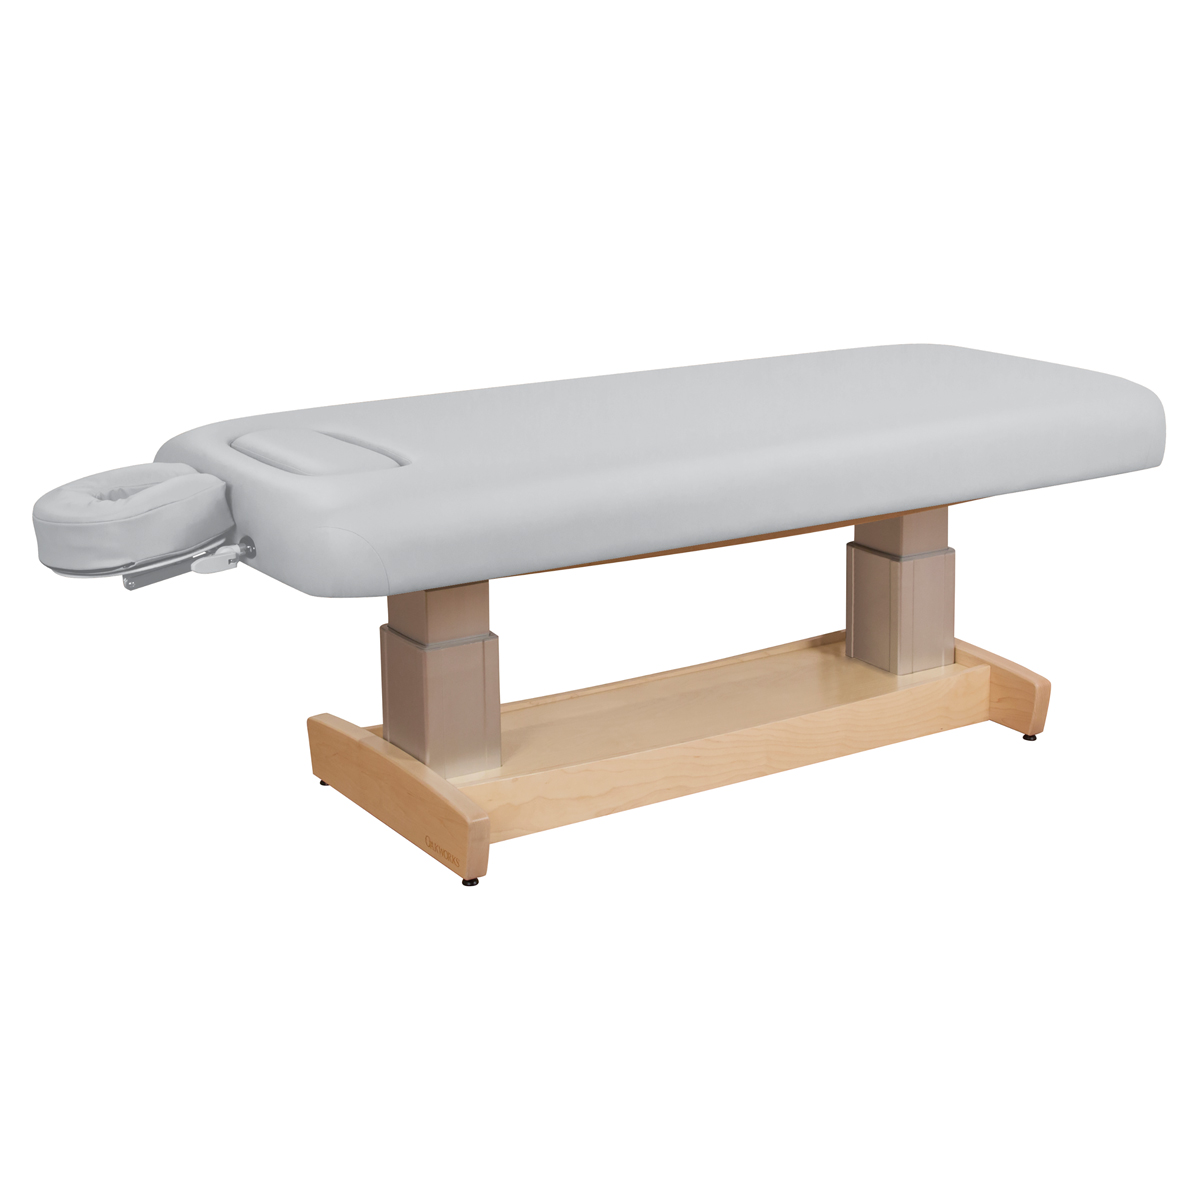 stunning massage table oakworks performa lift x 93 kb jpeg